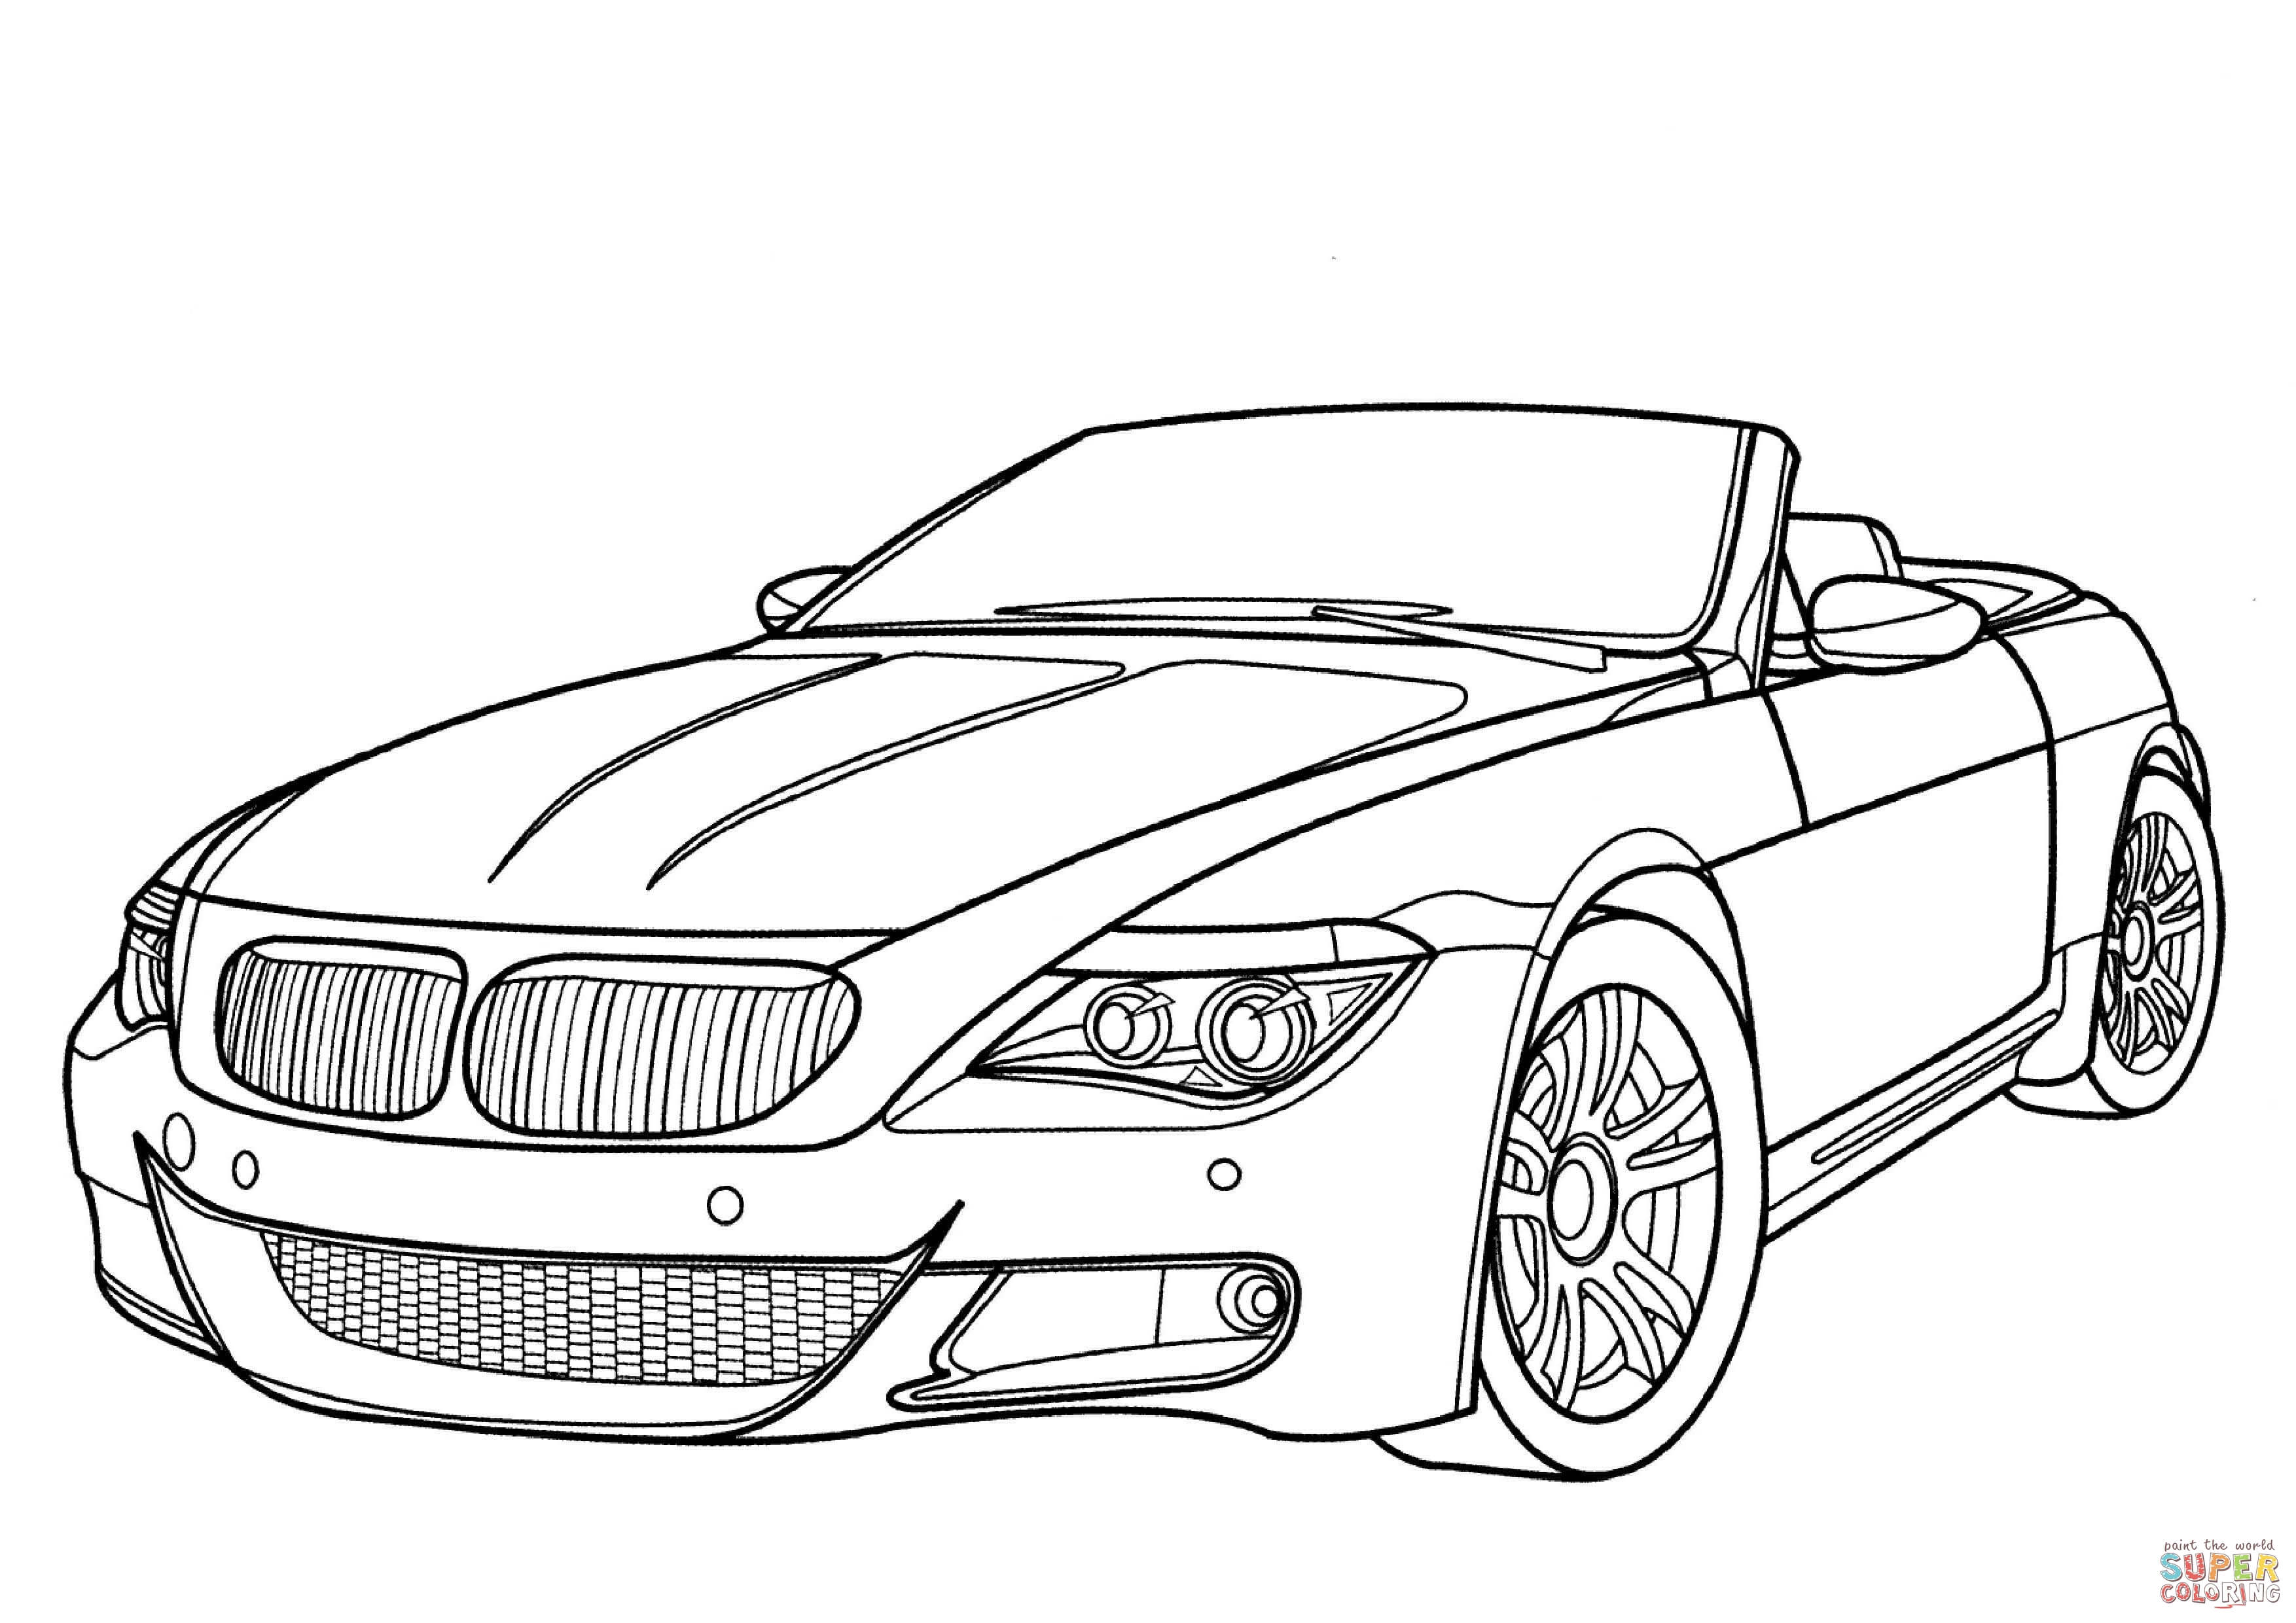 bmw m3 coloring pages bmw car m3 type coloring pages best place to color pages bmw m3 coloring